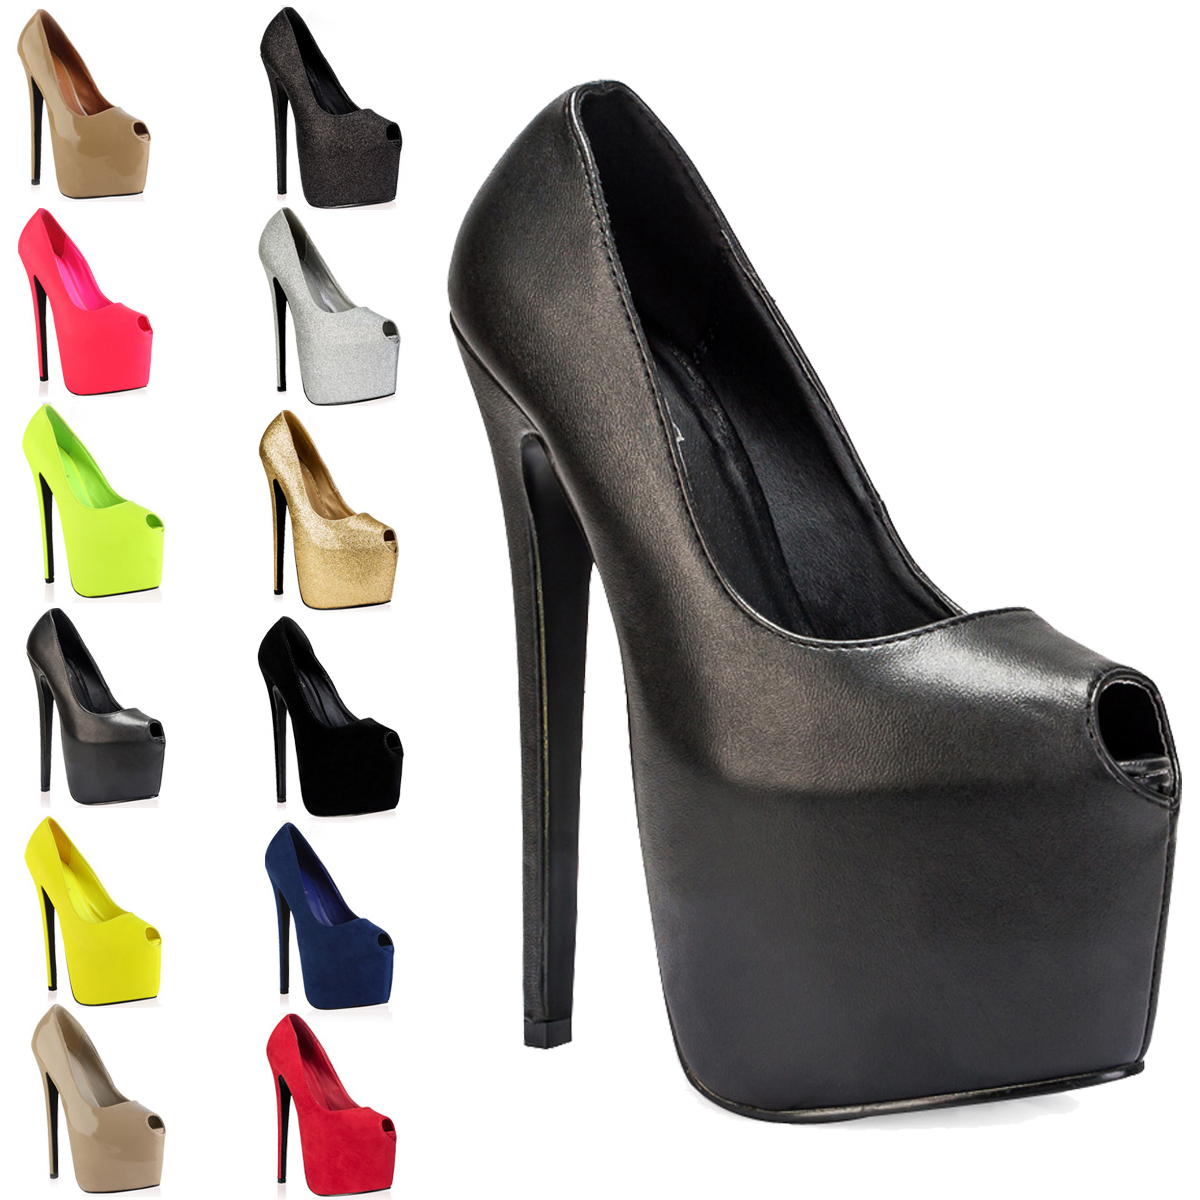 Ladies Peep Toe Womens Platform 7 Inch High Stiletto Heel Court ...